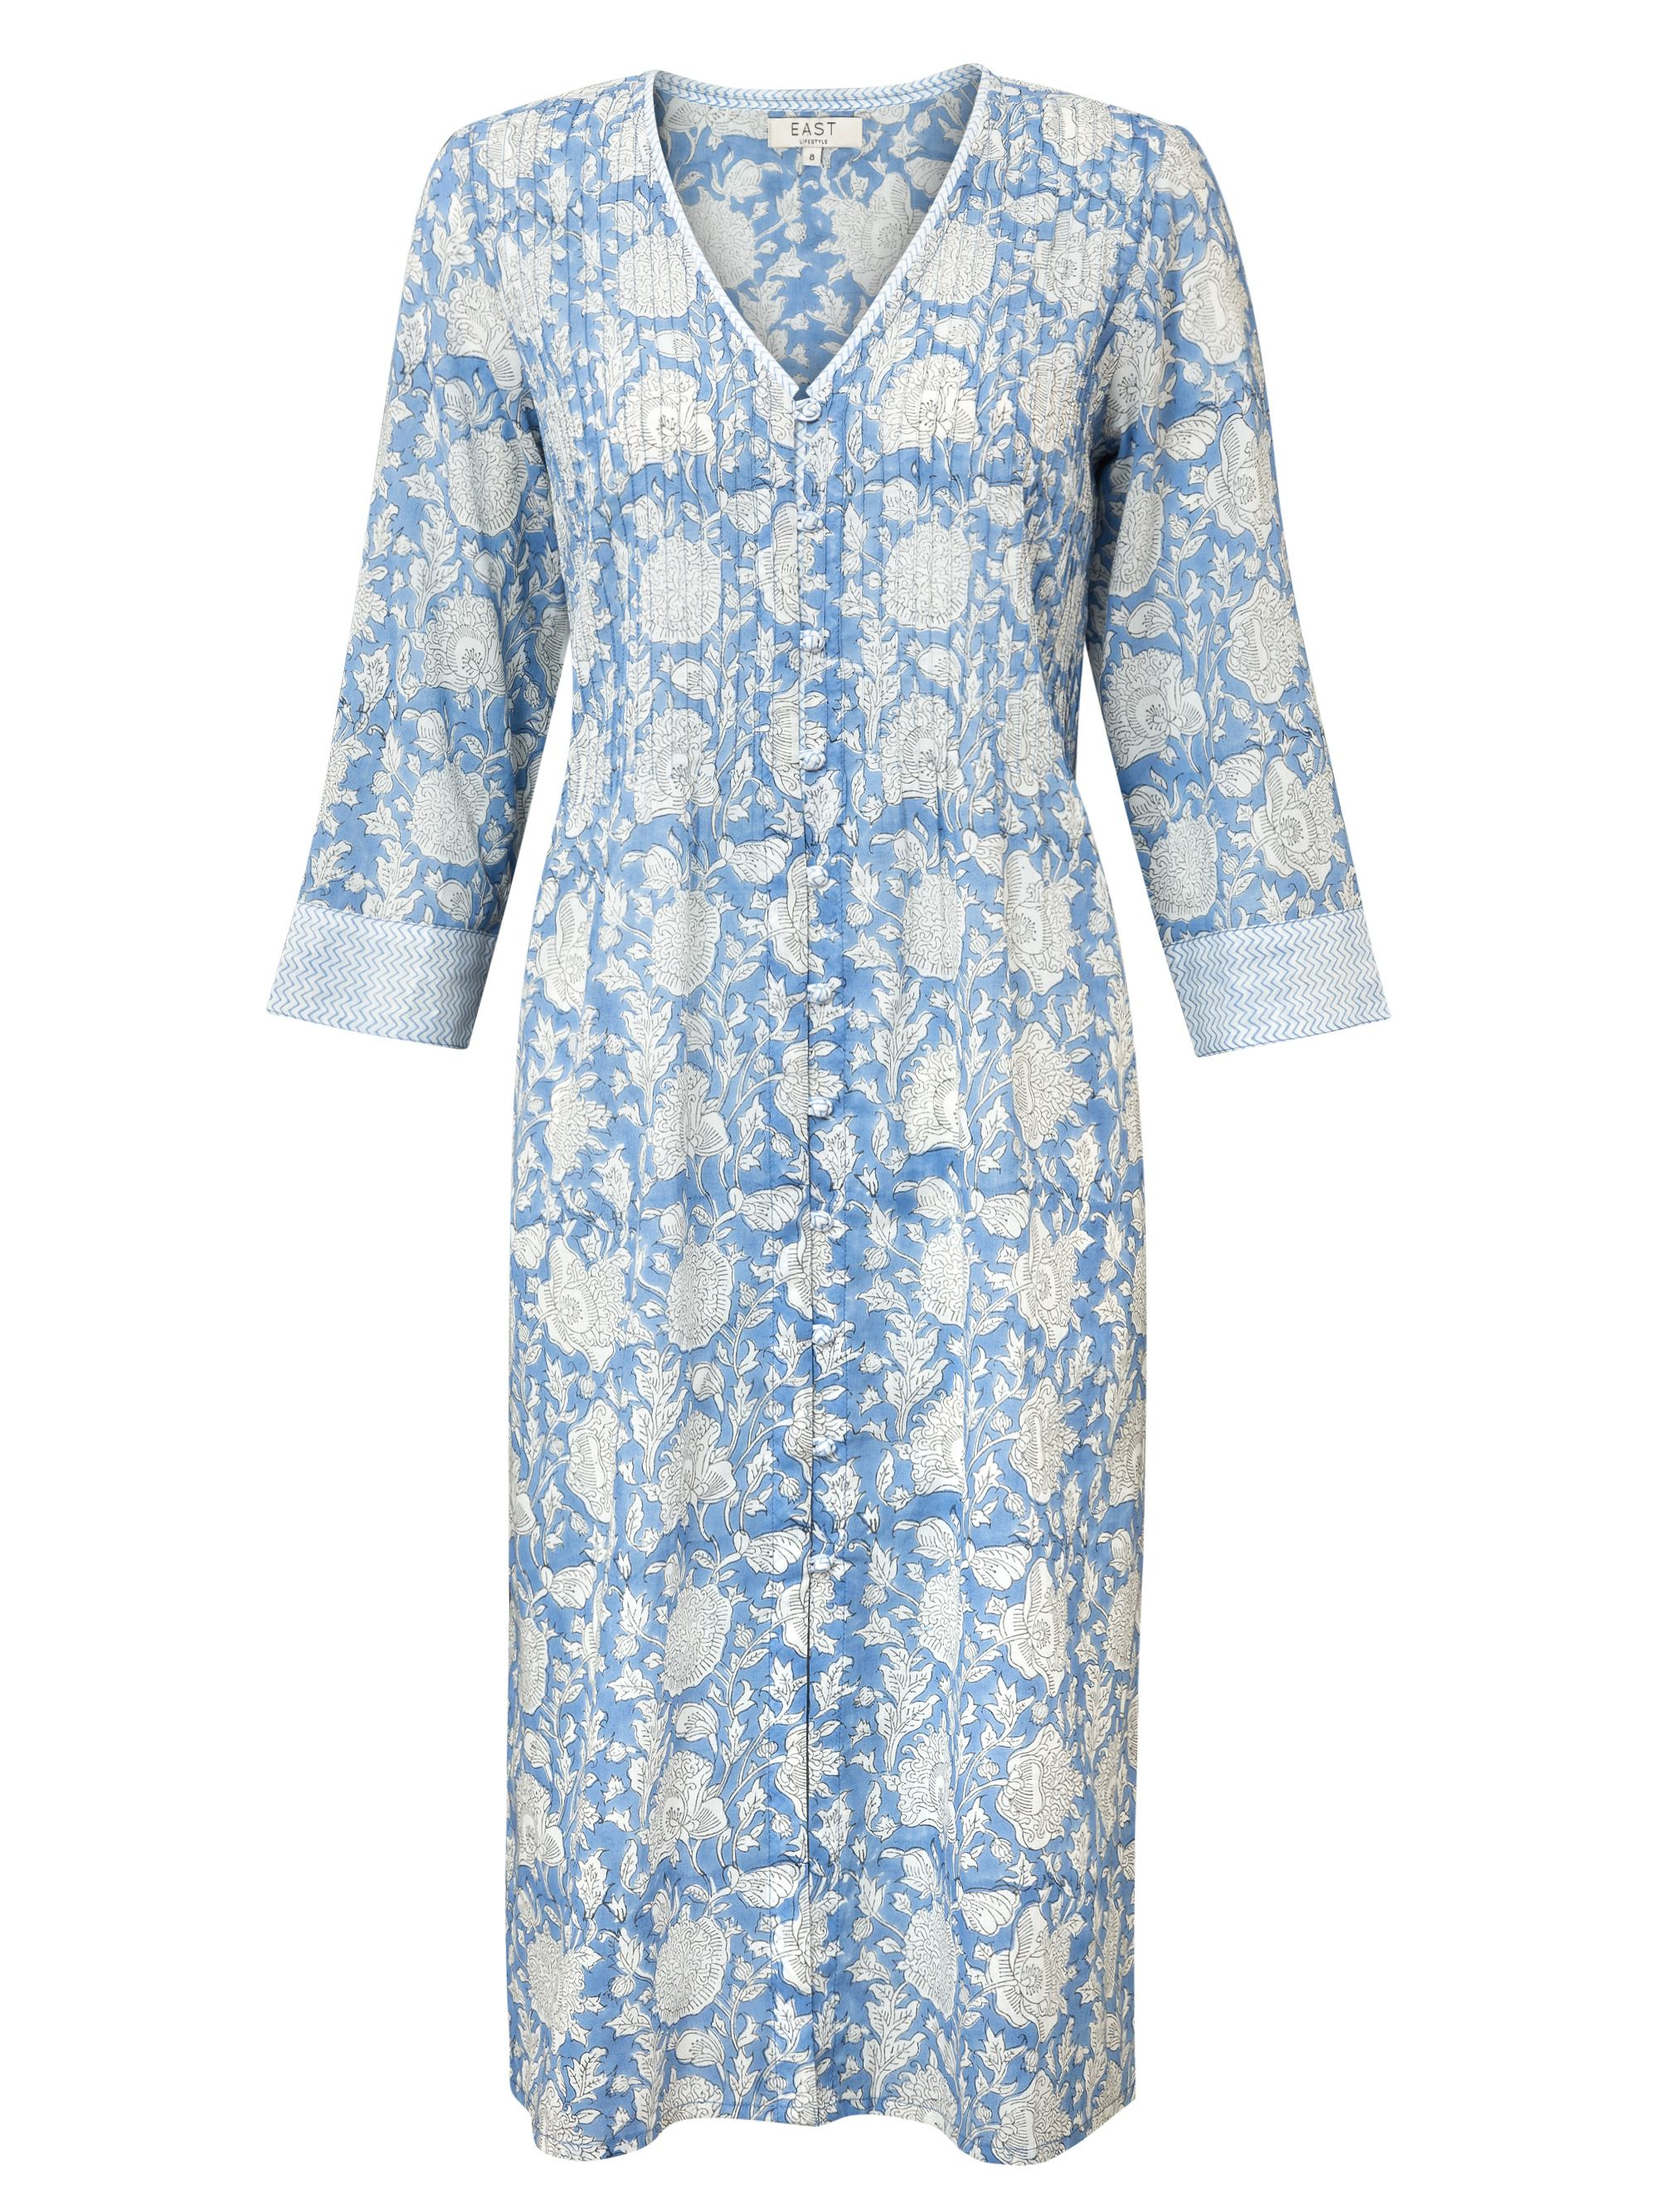 East Jaya Print Pintuck Dress, Blue